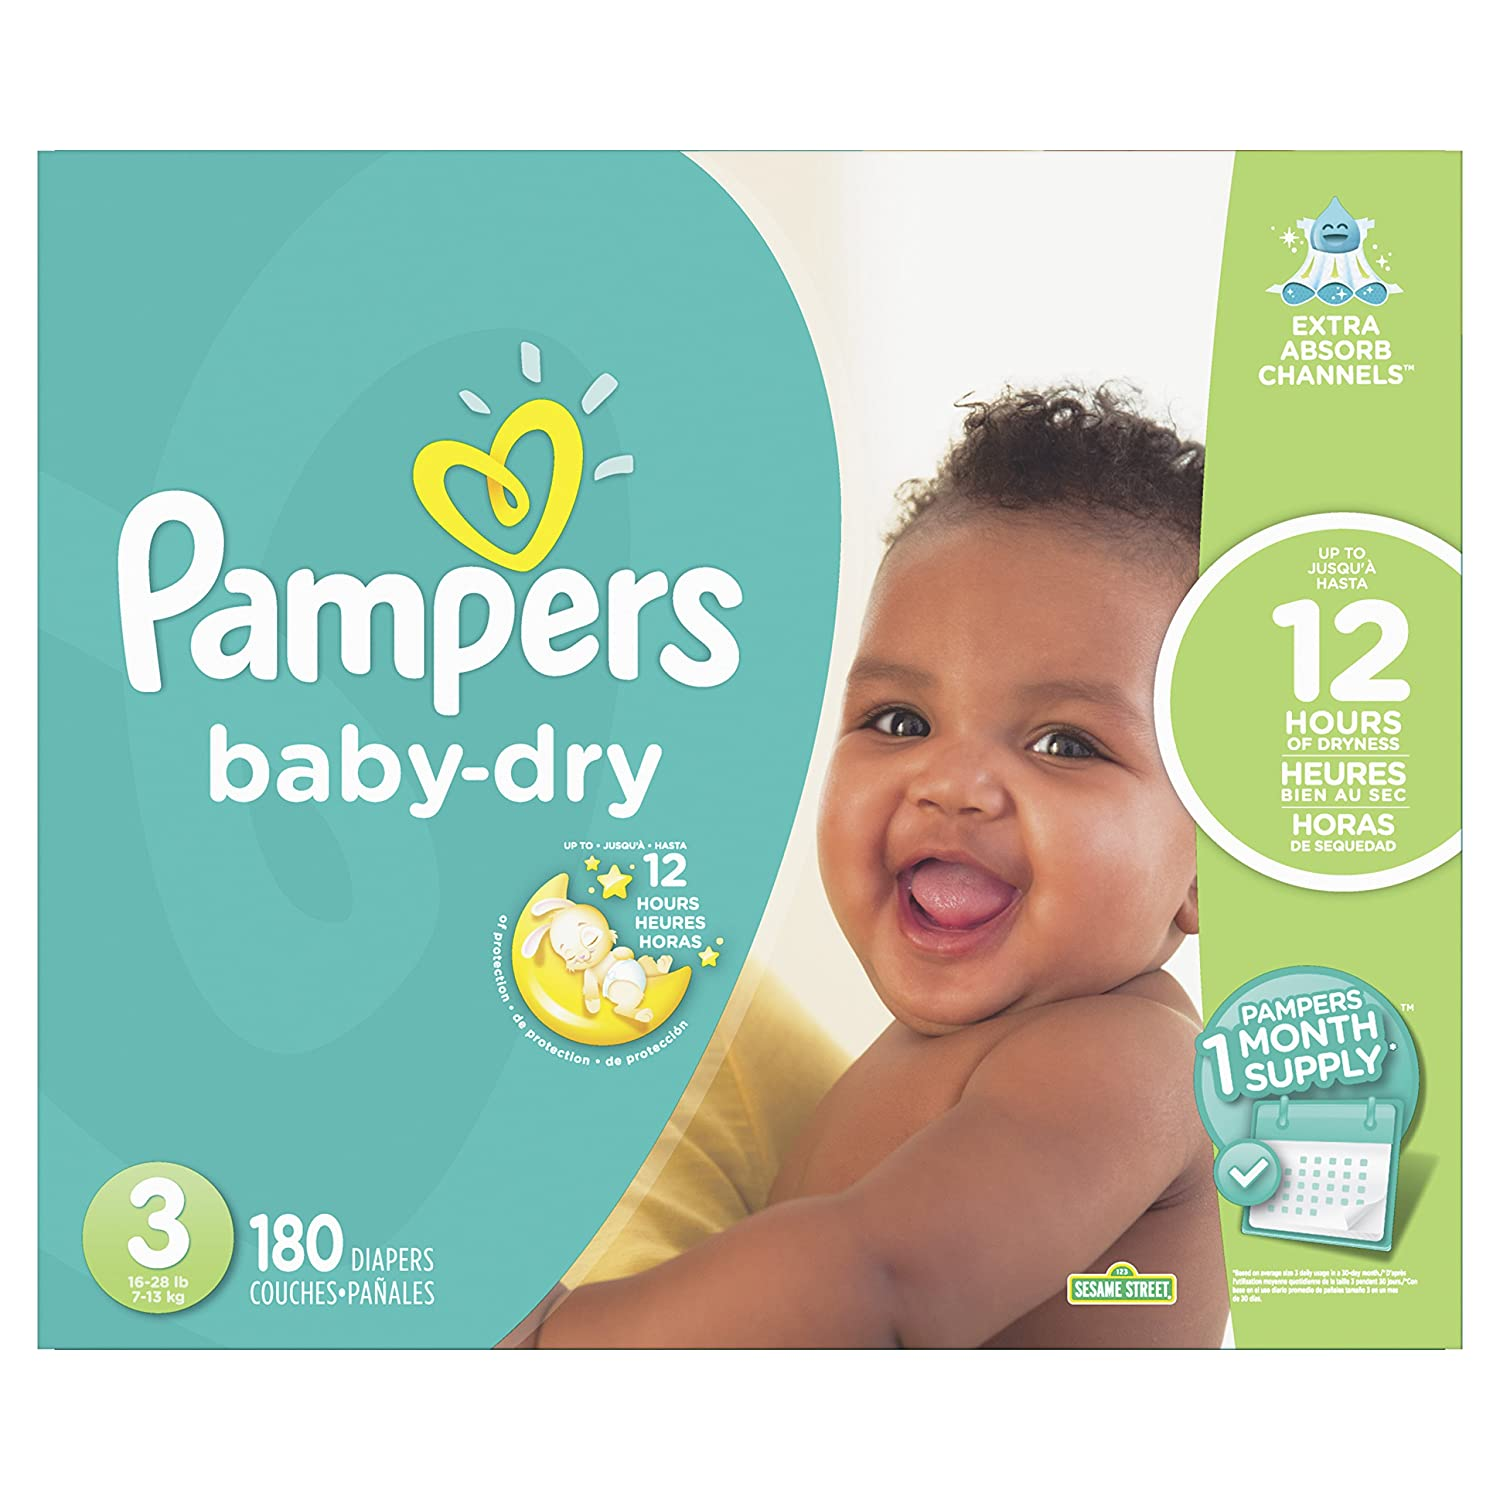 Amazon.com: Pampers Baby-Dry Disposable Diapers Size 3, 180 Count, ONE MONTH SUPPLY: Health & Personal Care